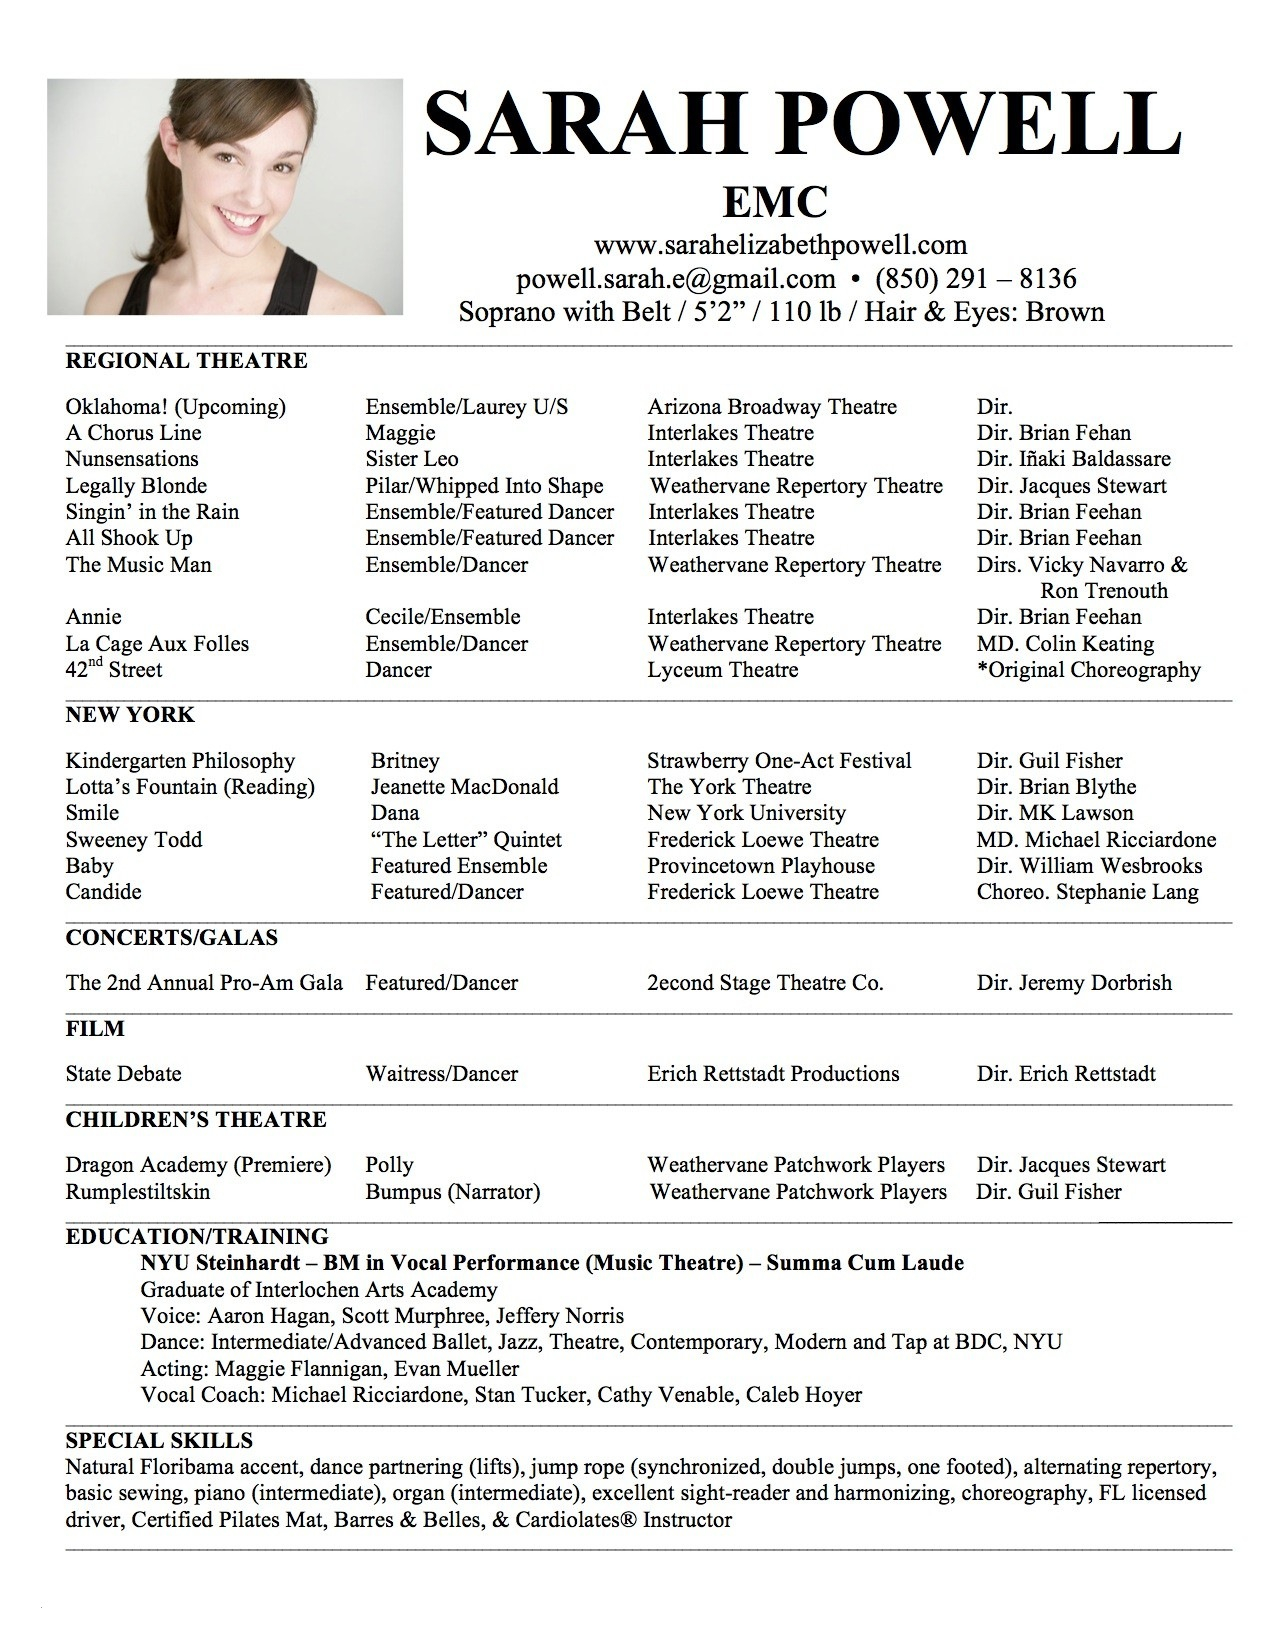 Child Acting Resume Template - Child Acting Resume Template Unique Child Acting Resume Template